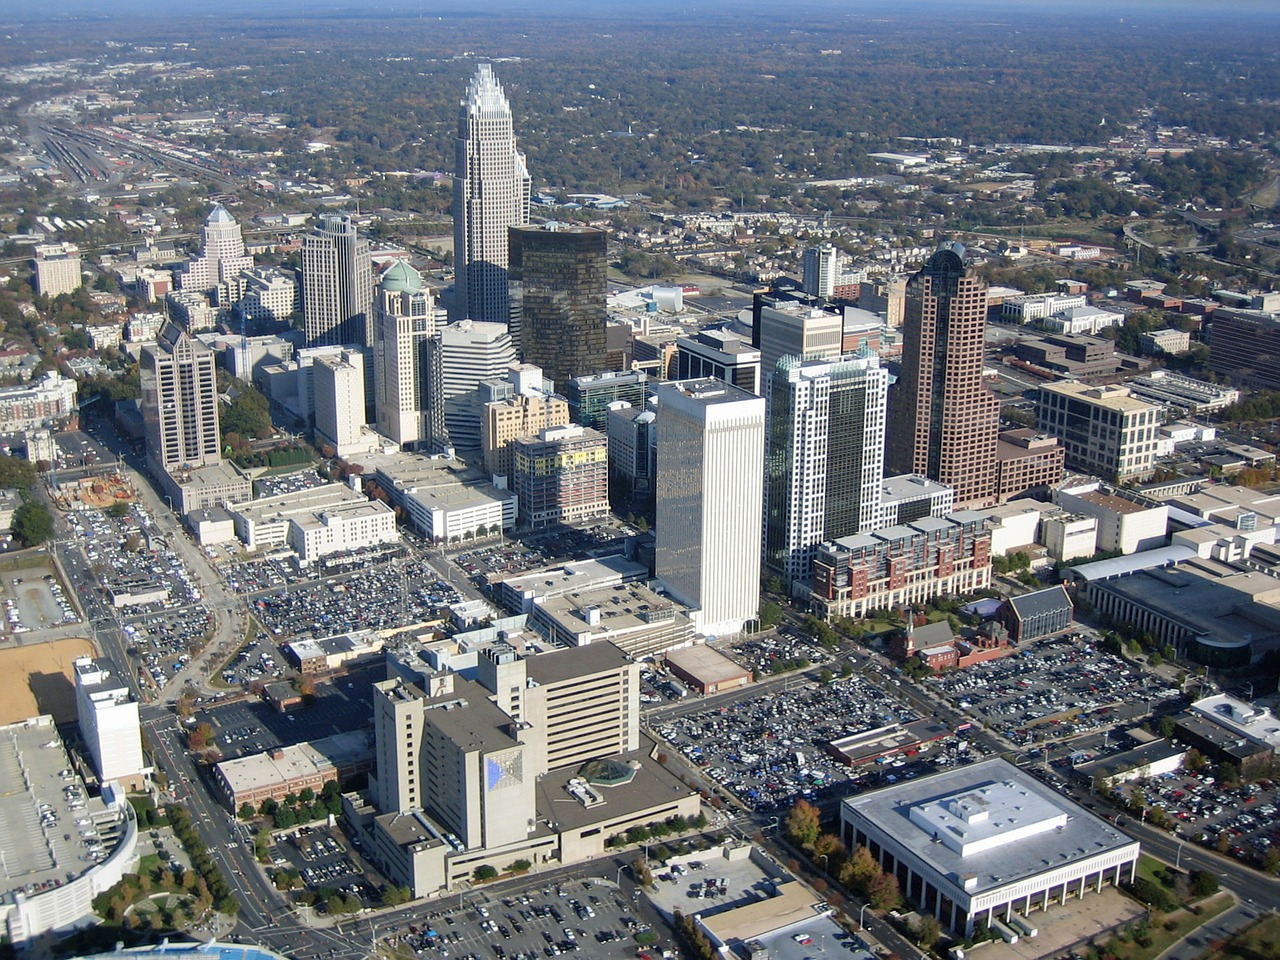 charlotte-69203_1280 10 Most Popular Event Cities To Host A Speaker Event